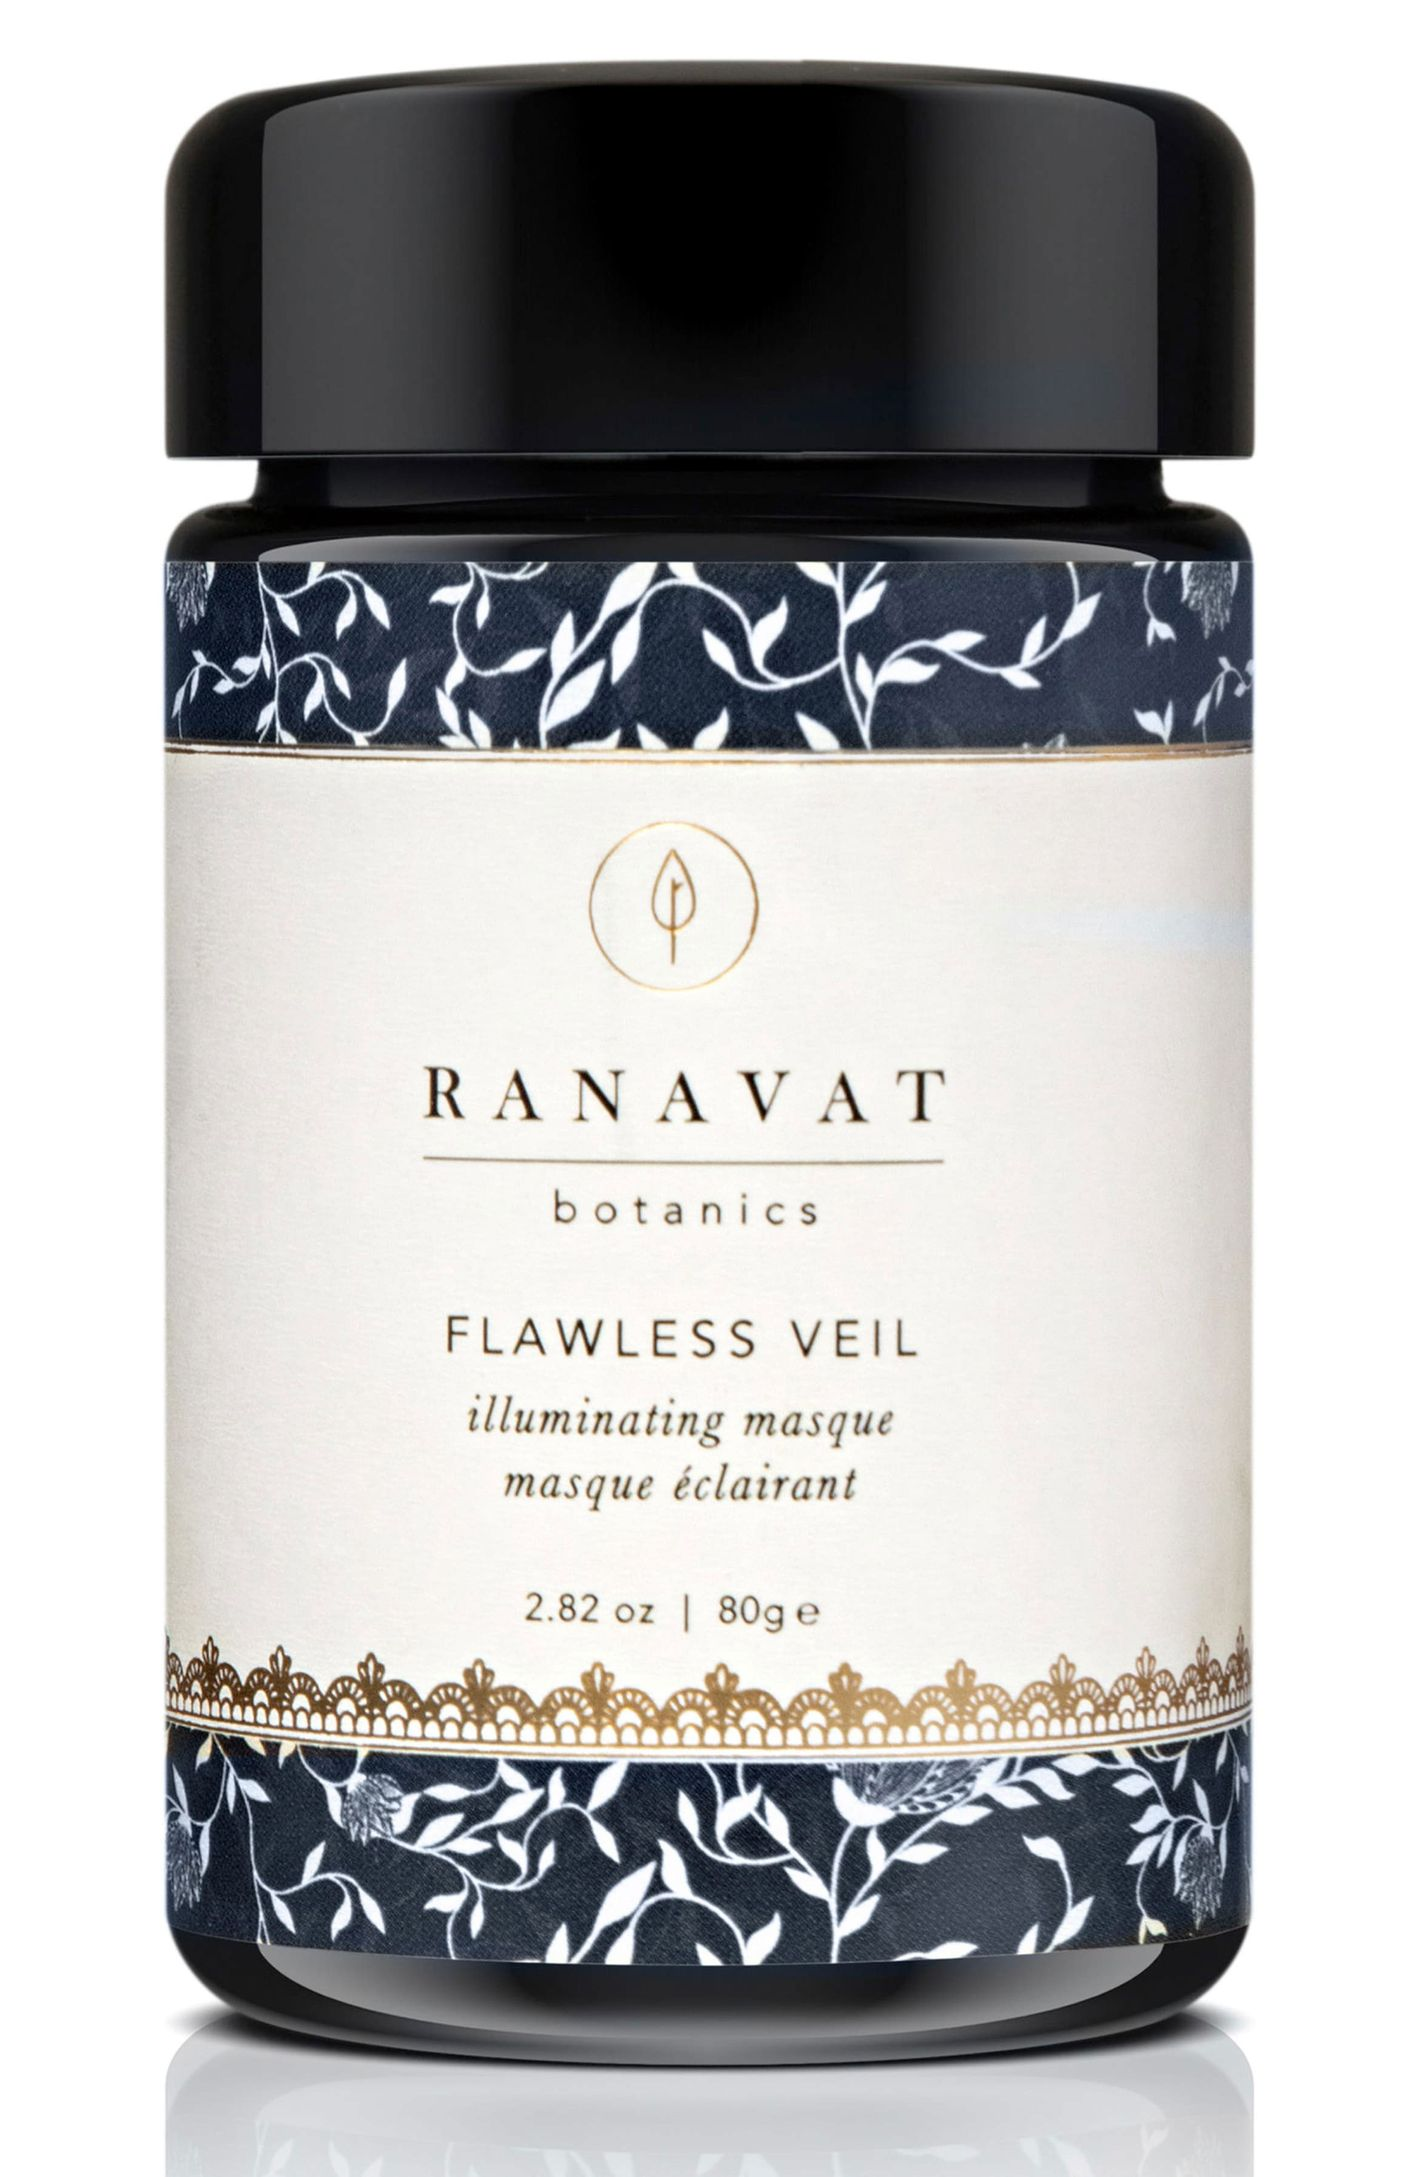 Ranavat Botanicals Flawless Veil Illuminating Masque